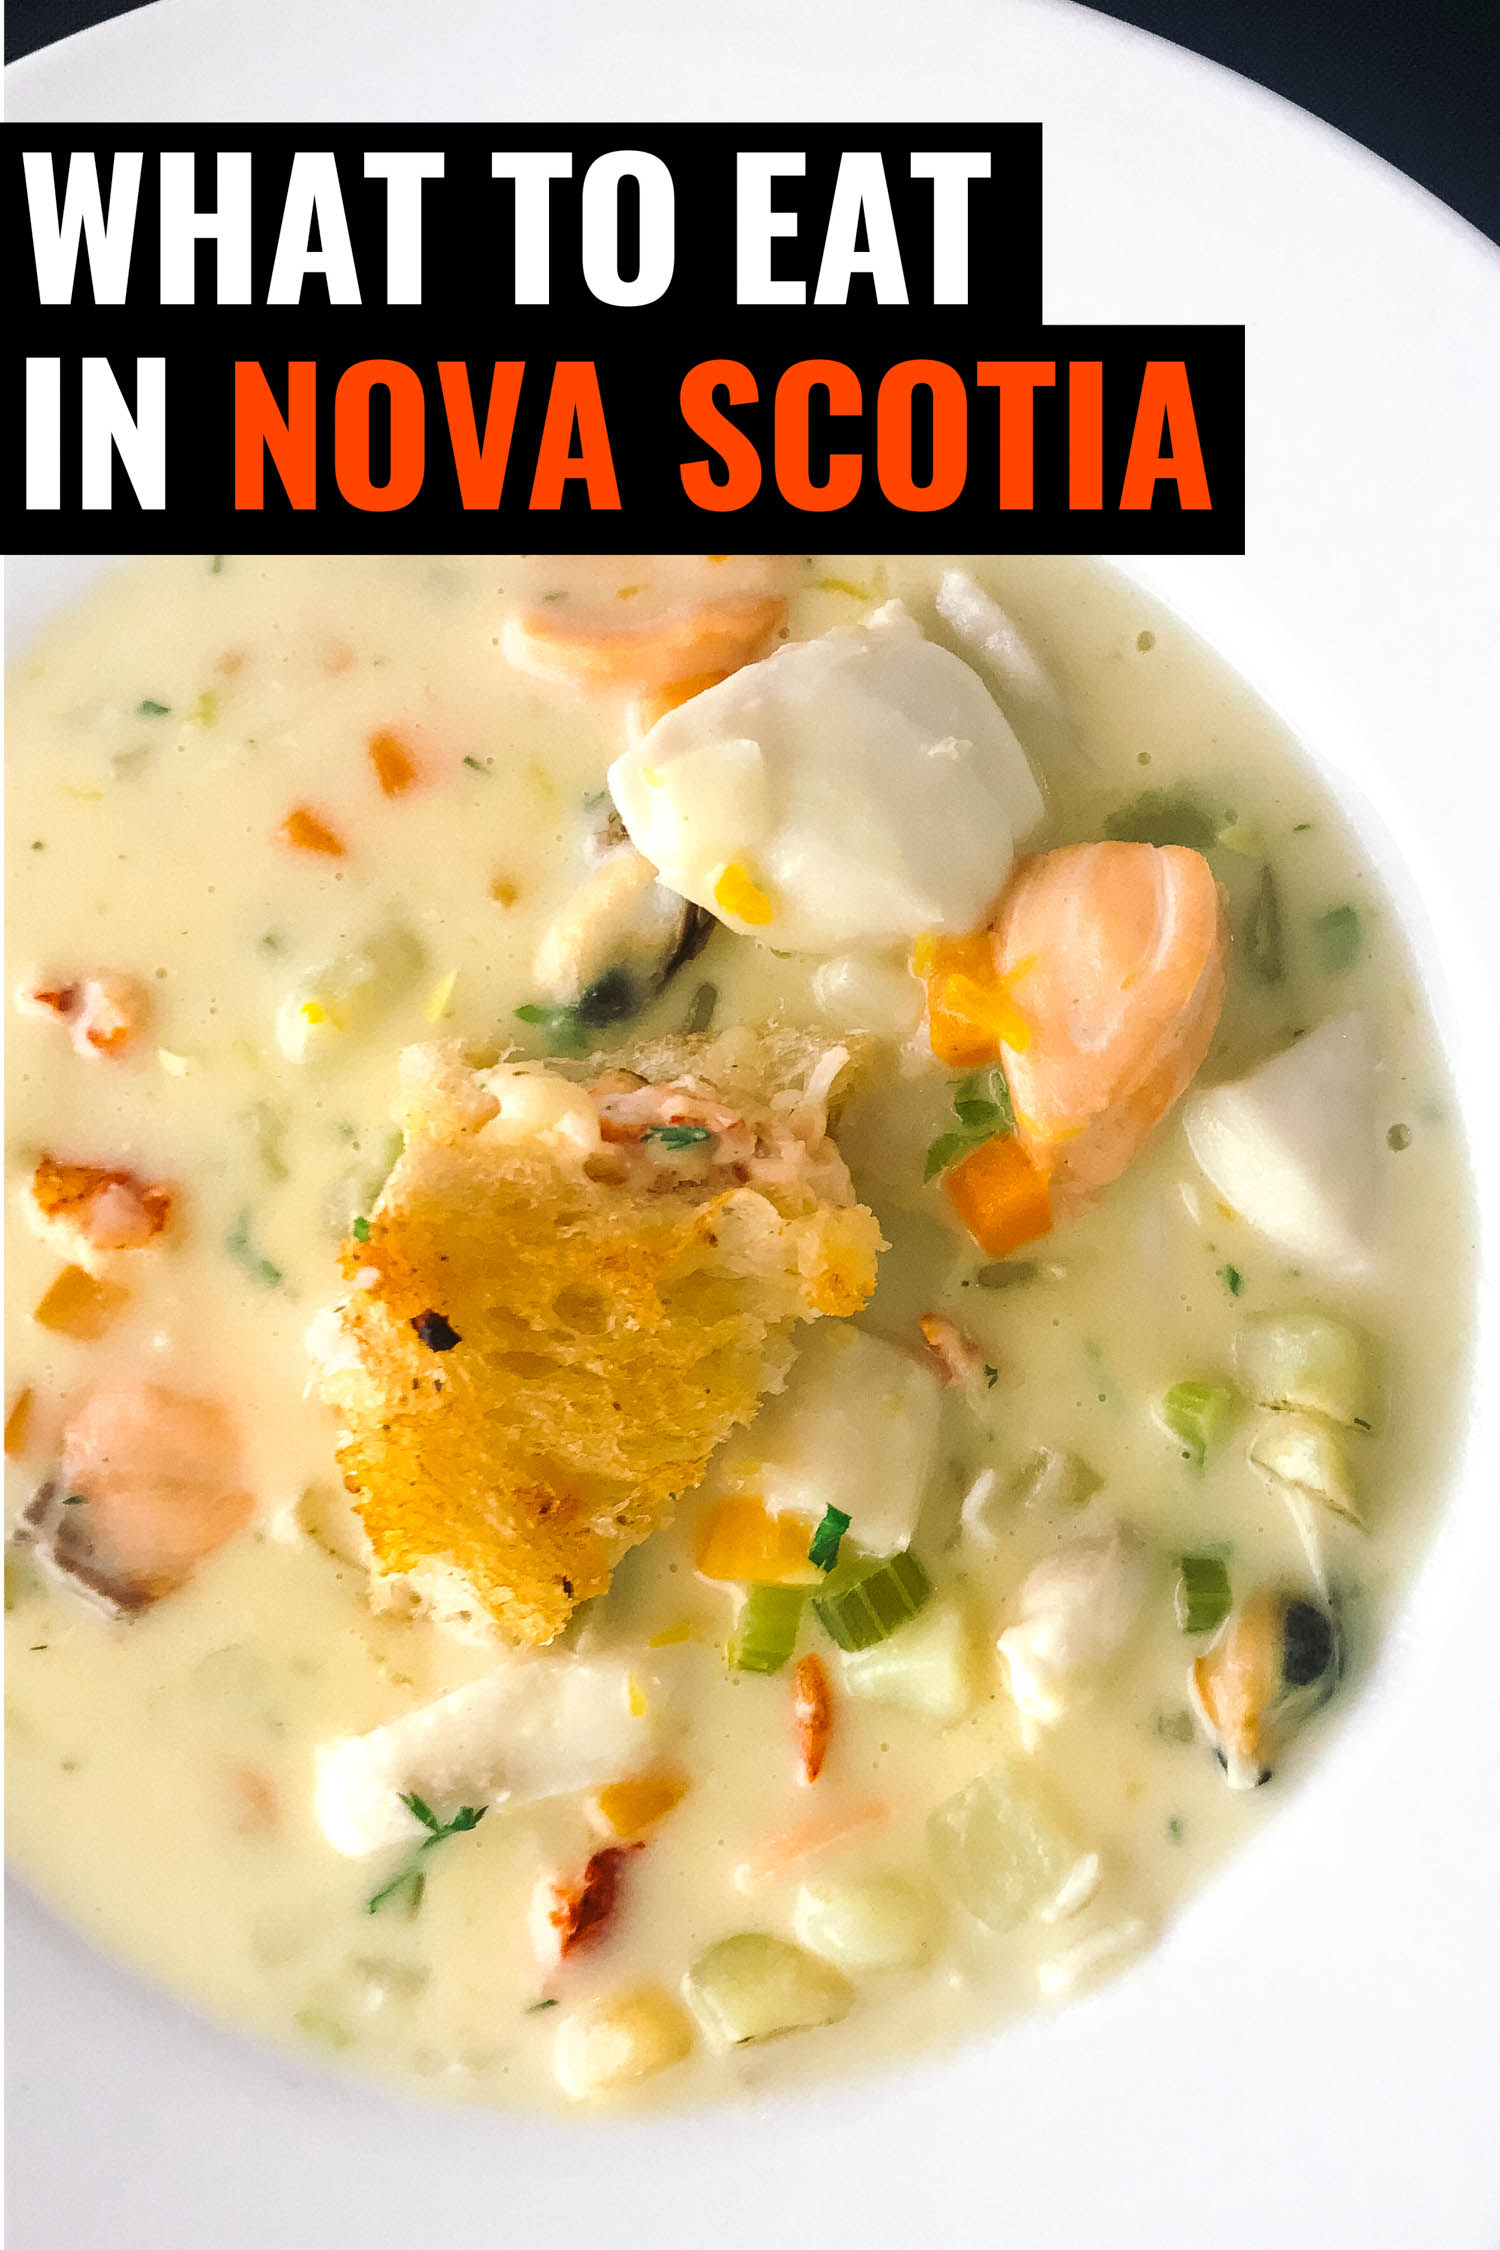 Nova Scotia chowder in white bowl.